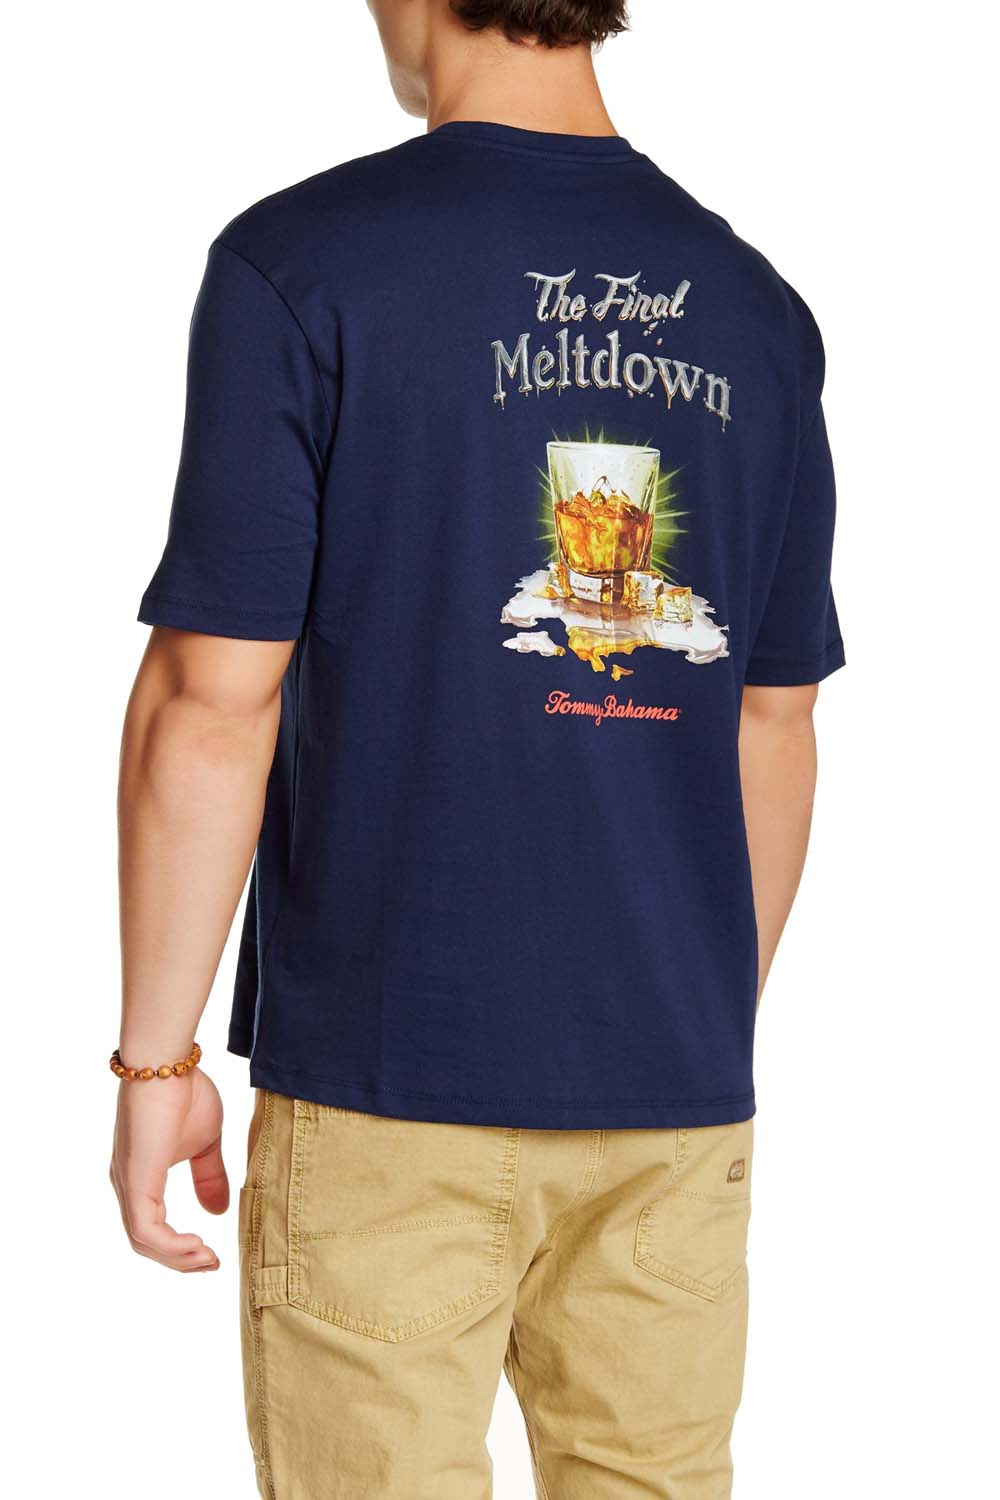 Tommy Bahama The Final Meltdown Small Navy T Shirt Ebay